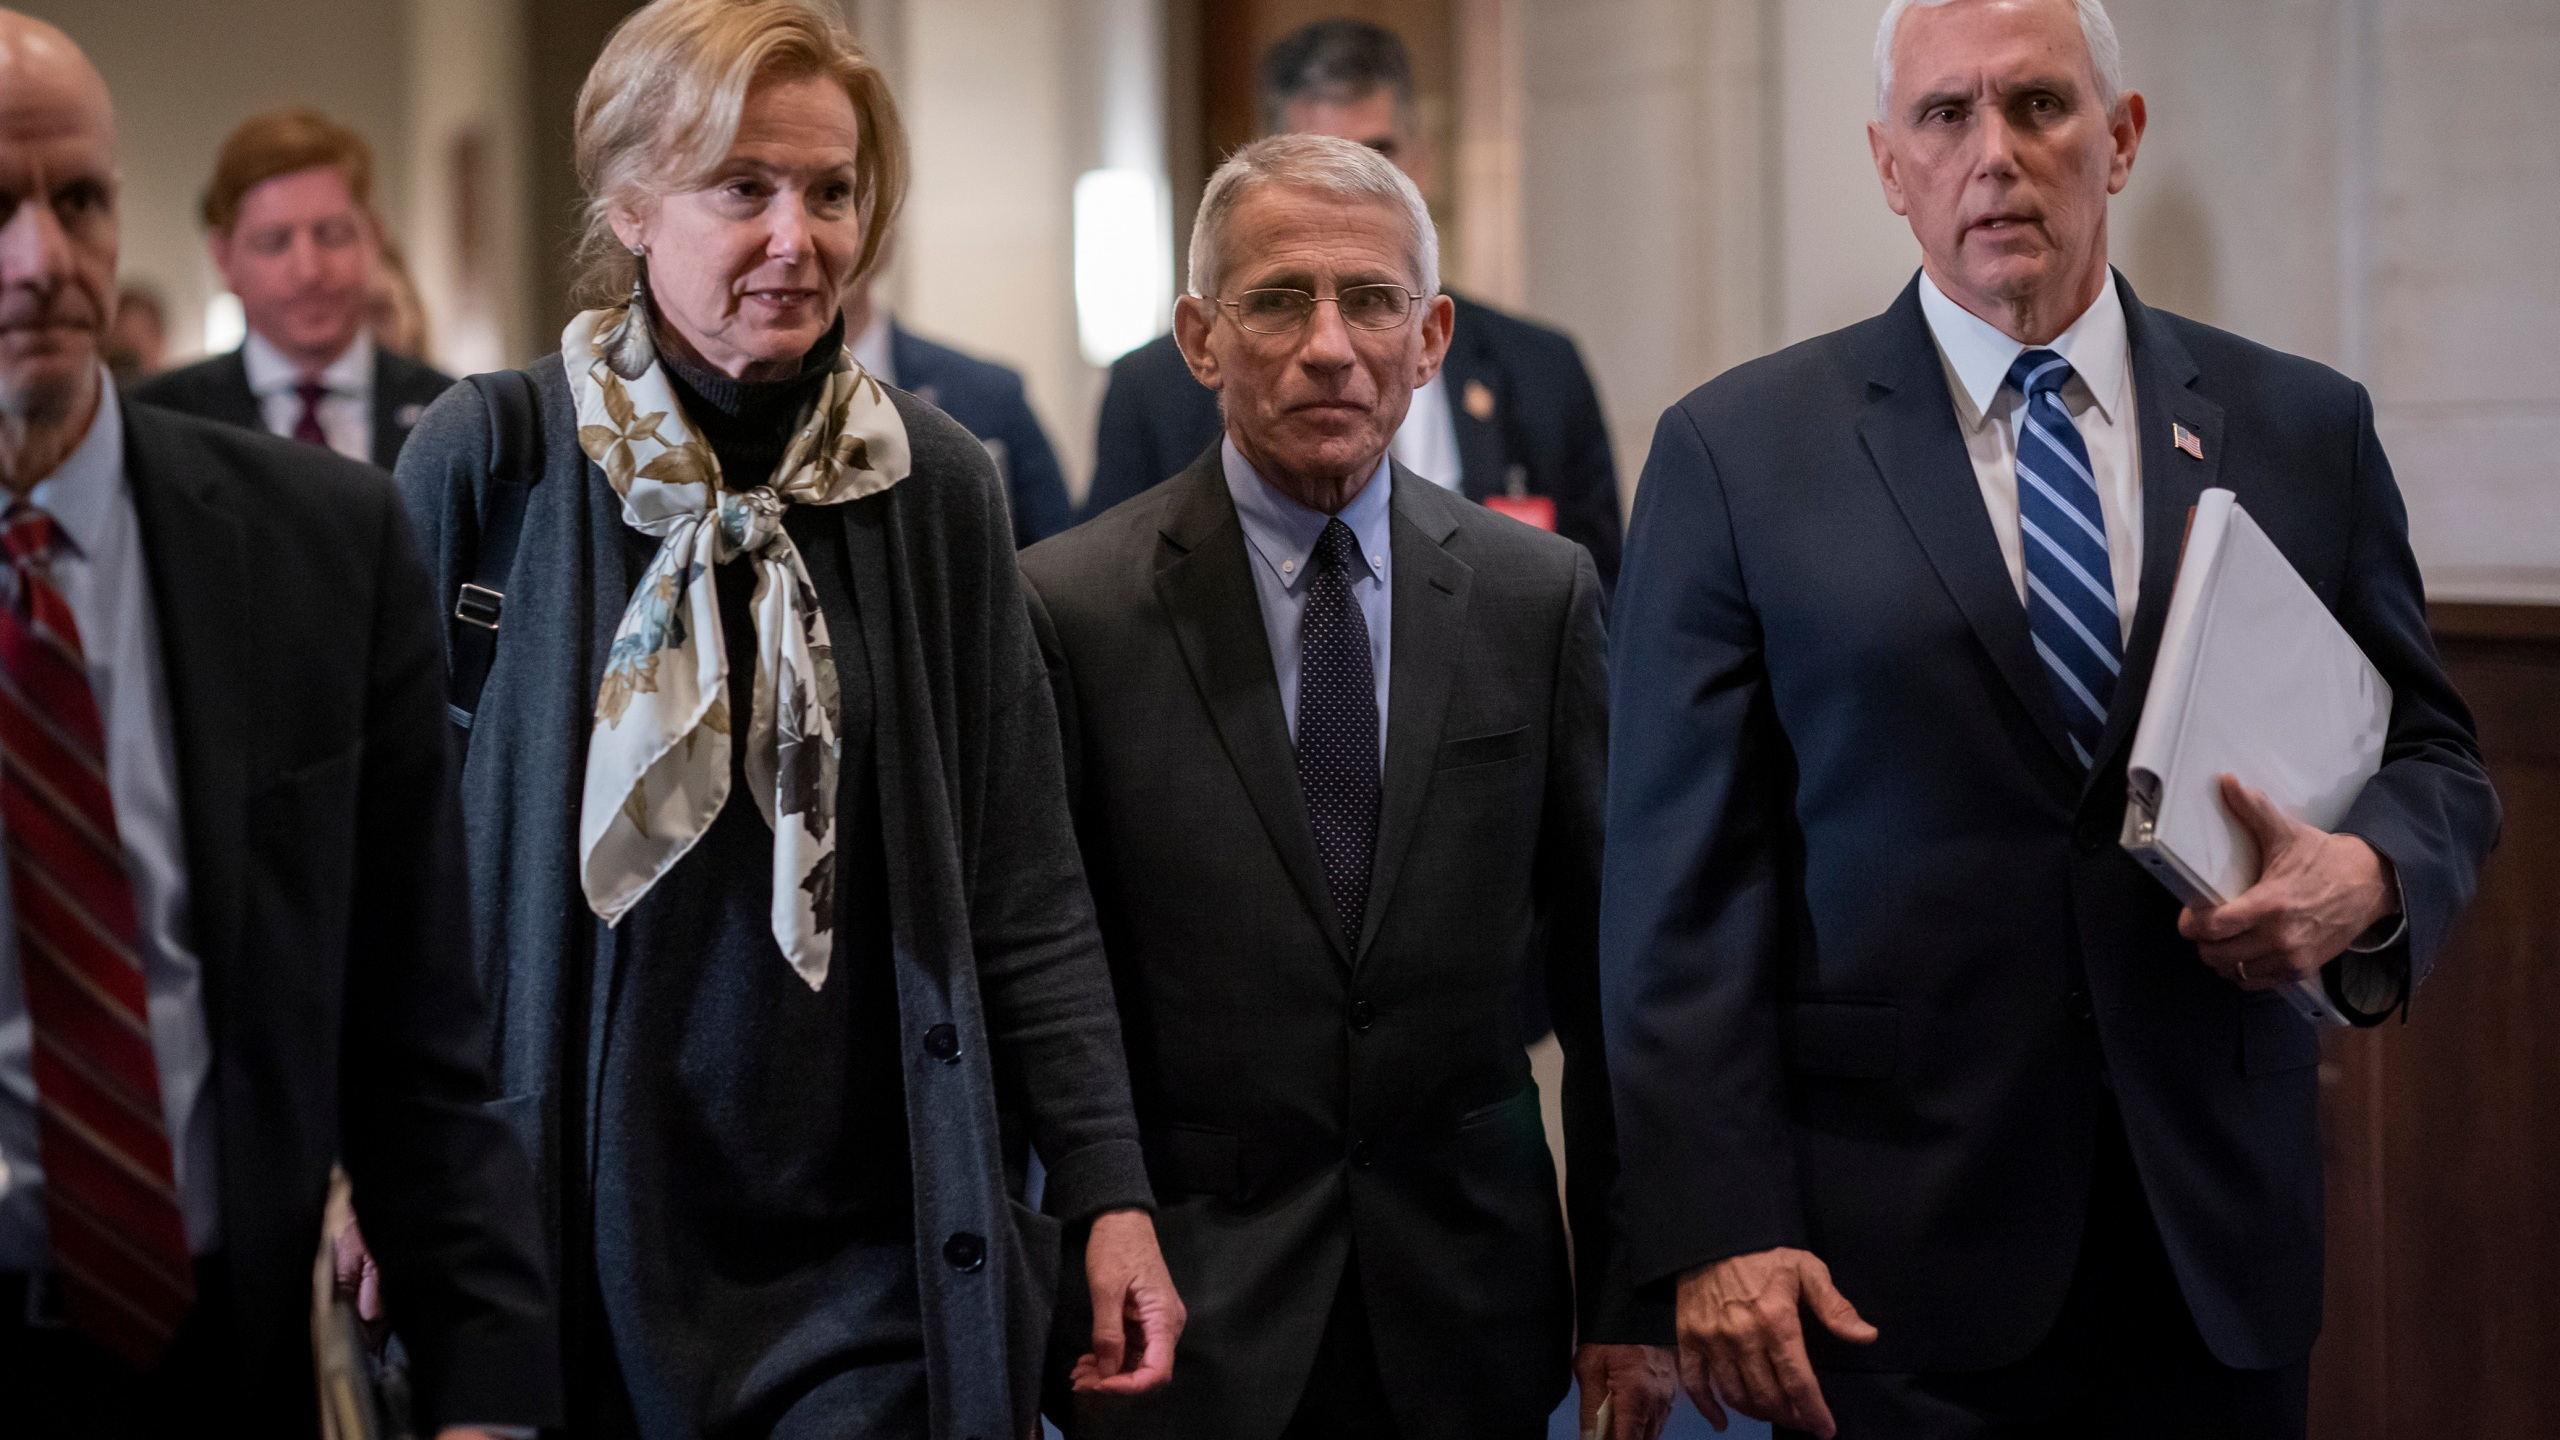 Deborah Birx, Anthony Fauci, Mike Pence